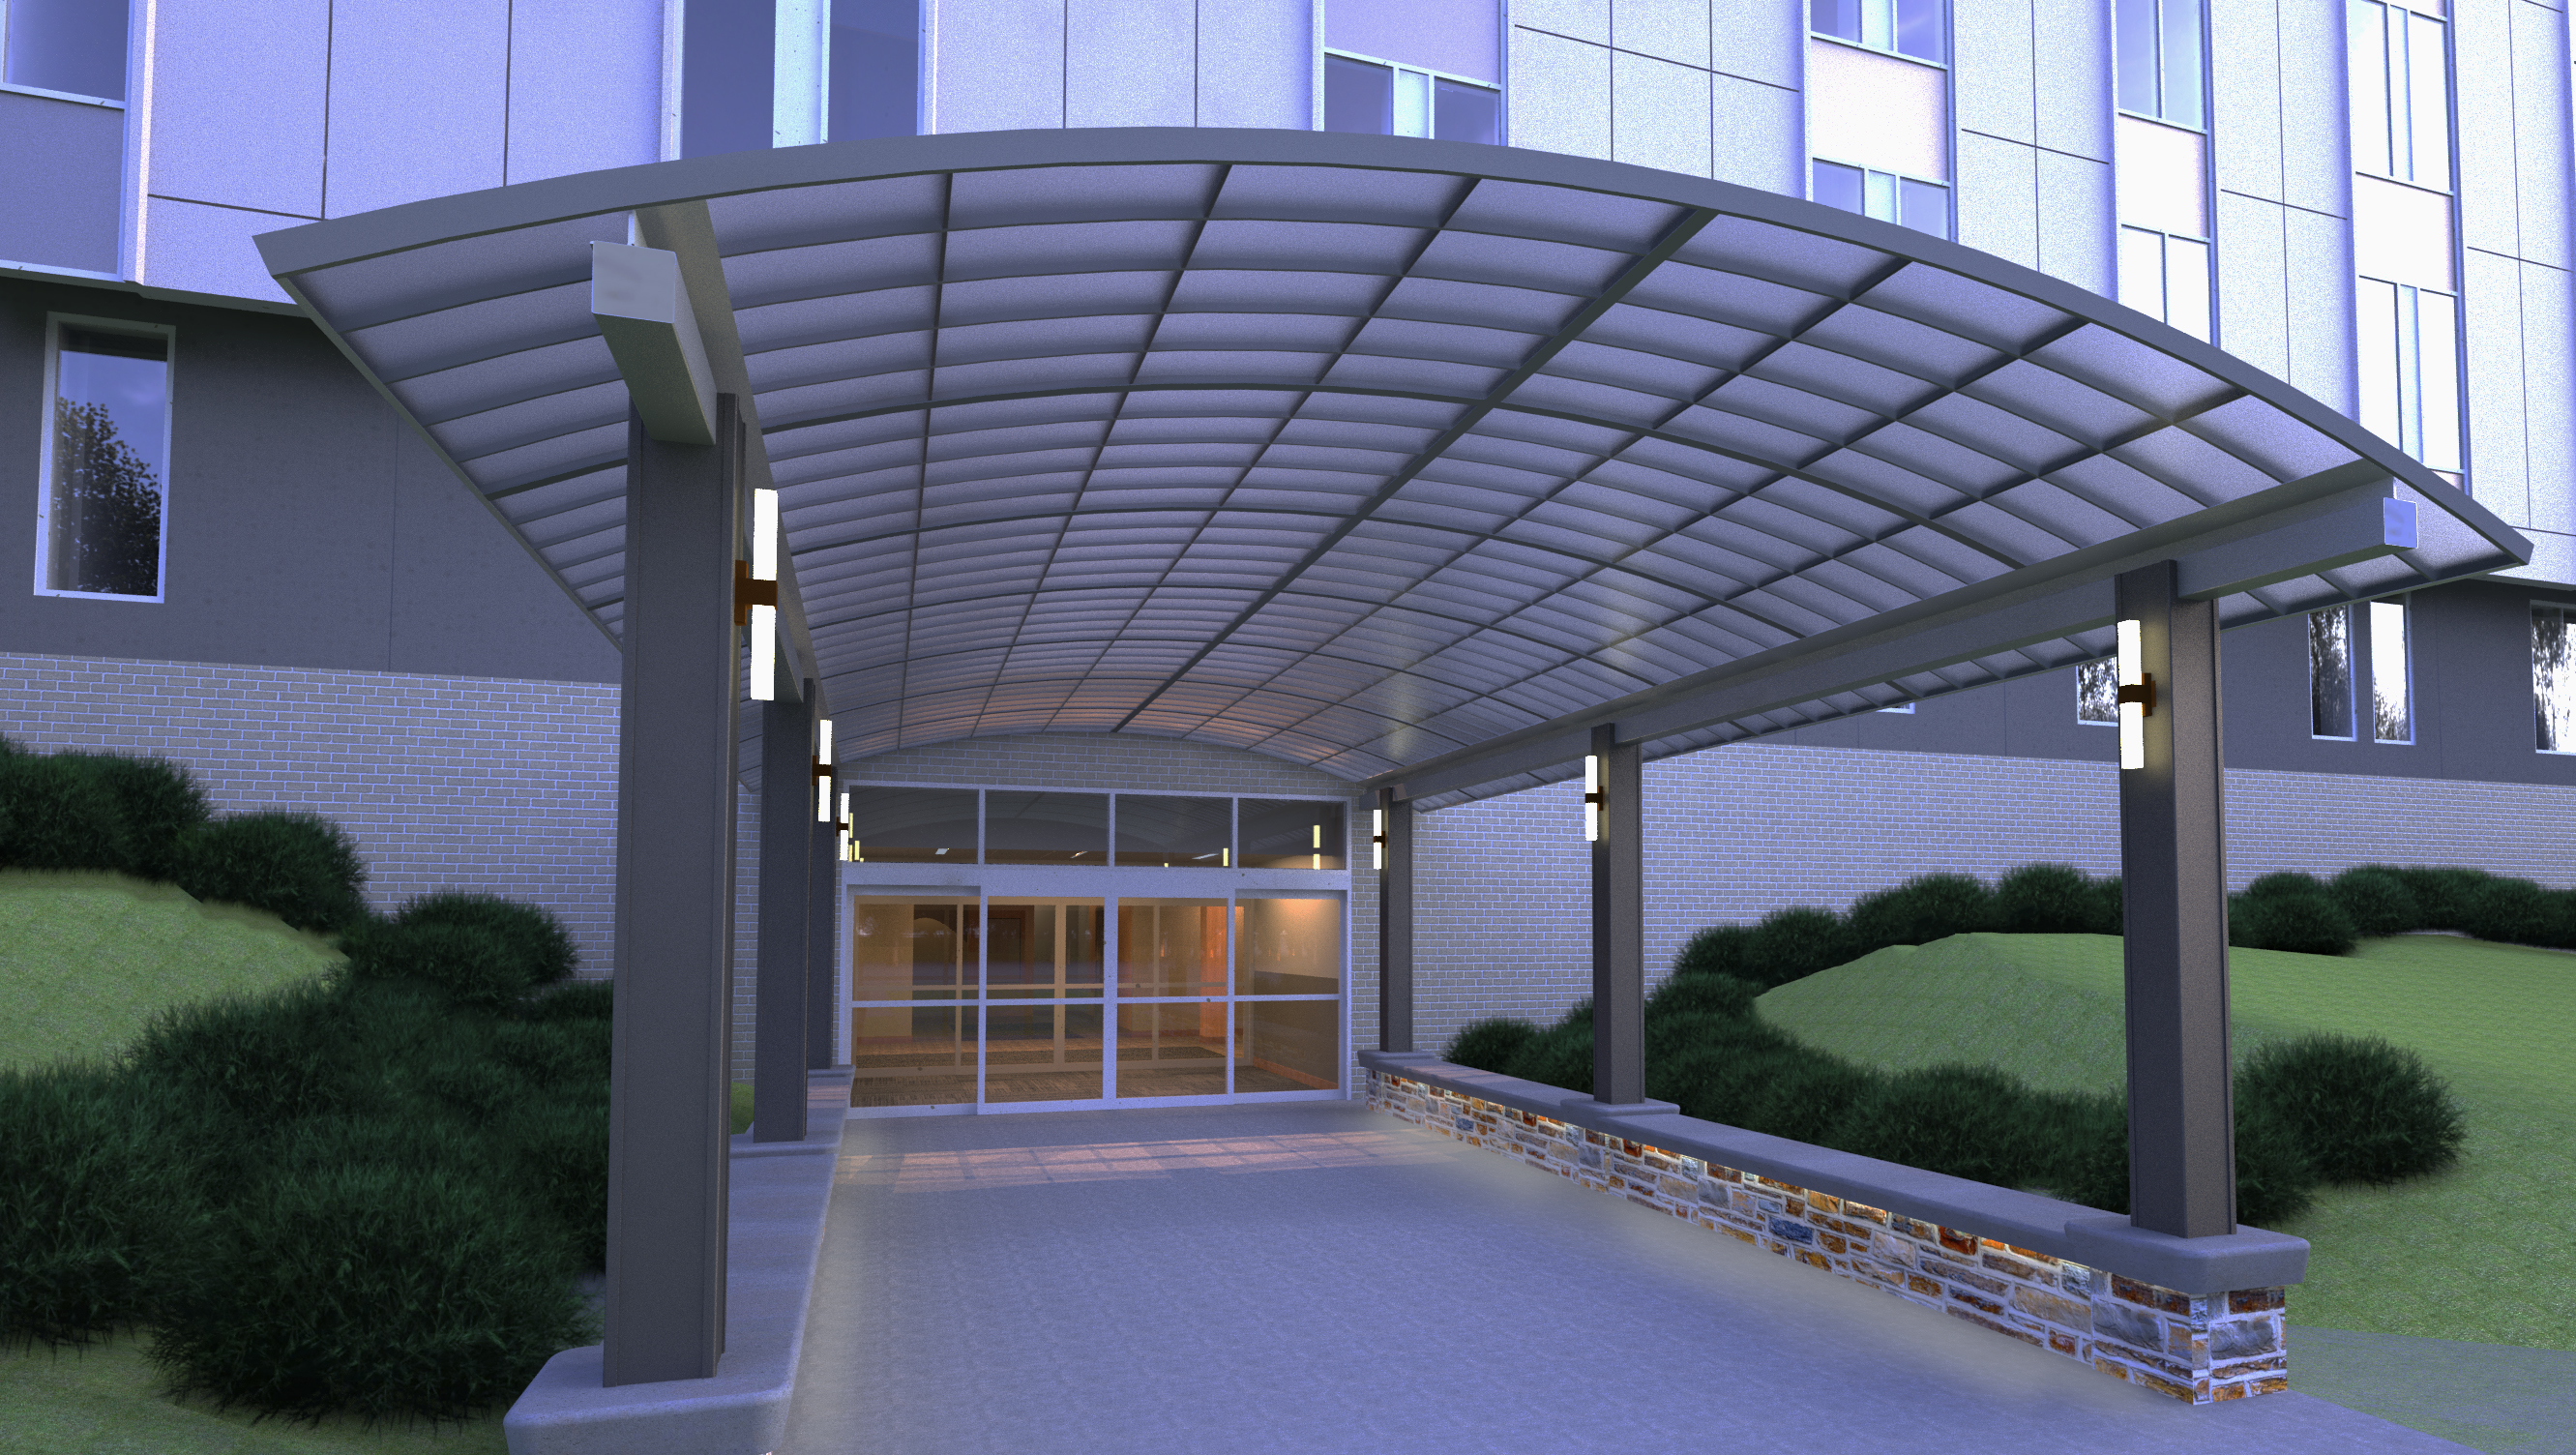 Duke Raleigh Hospital's Future